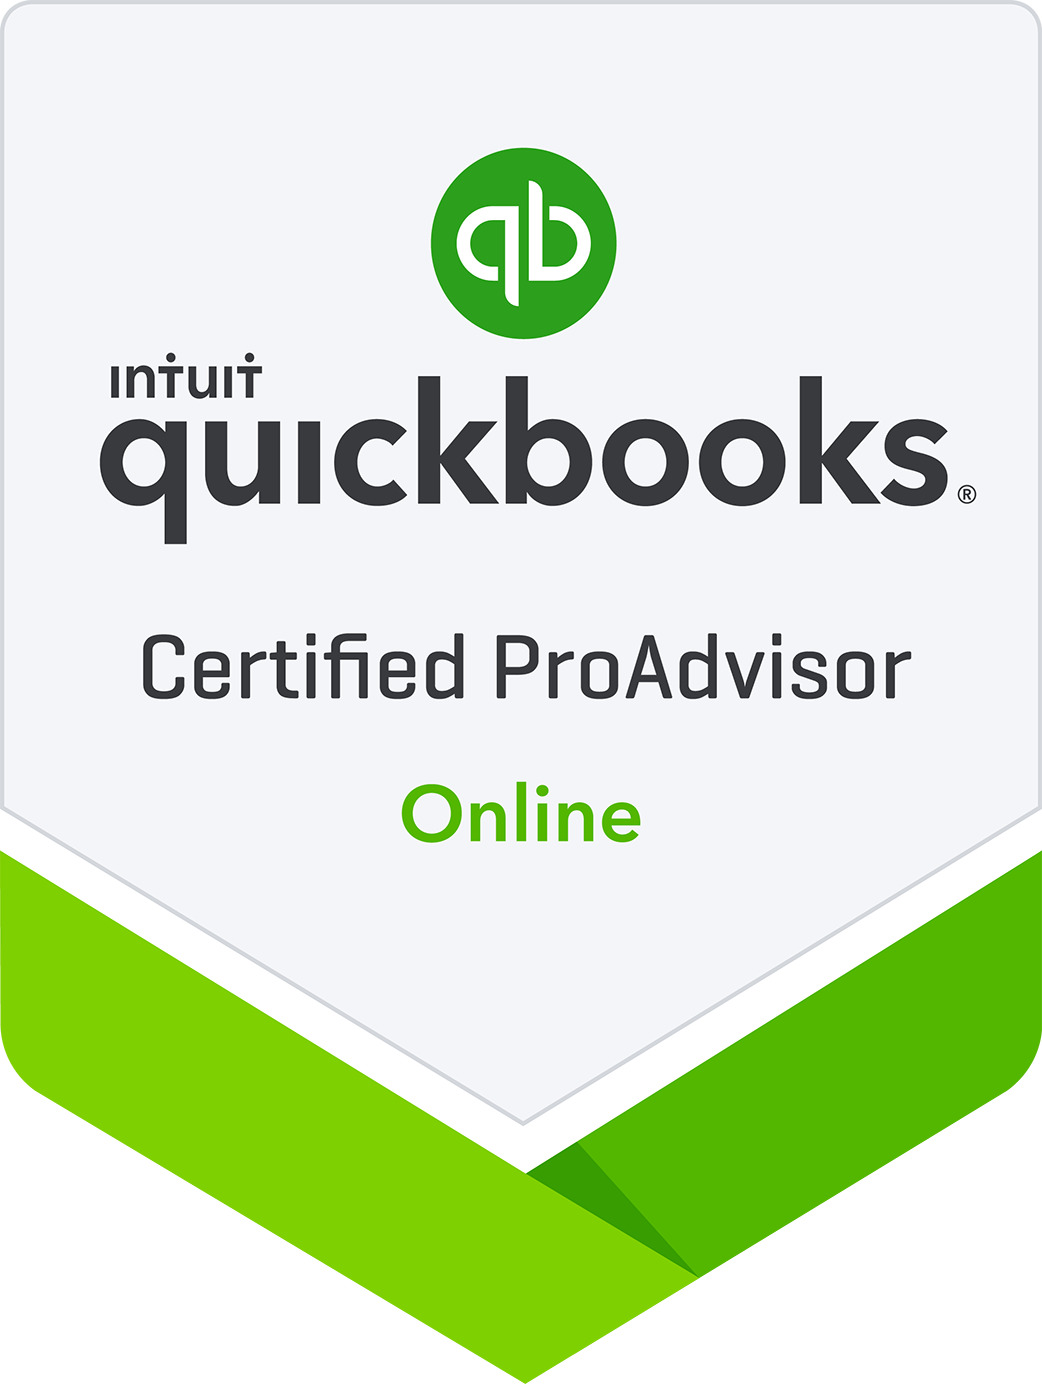 Certified QuickBooks Online Proadvisor in New York, Long Island, Nassau & Suffolk Counties, Queens, and Brooklyn